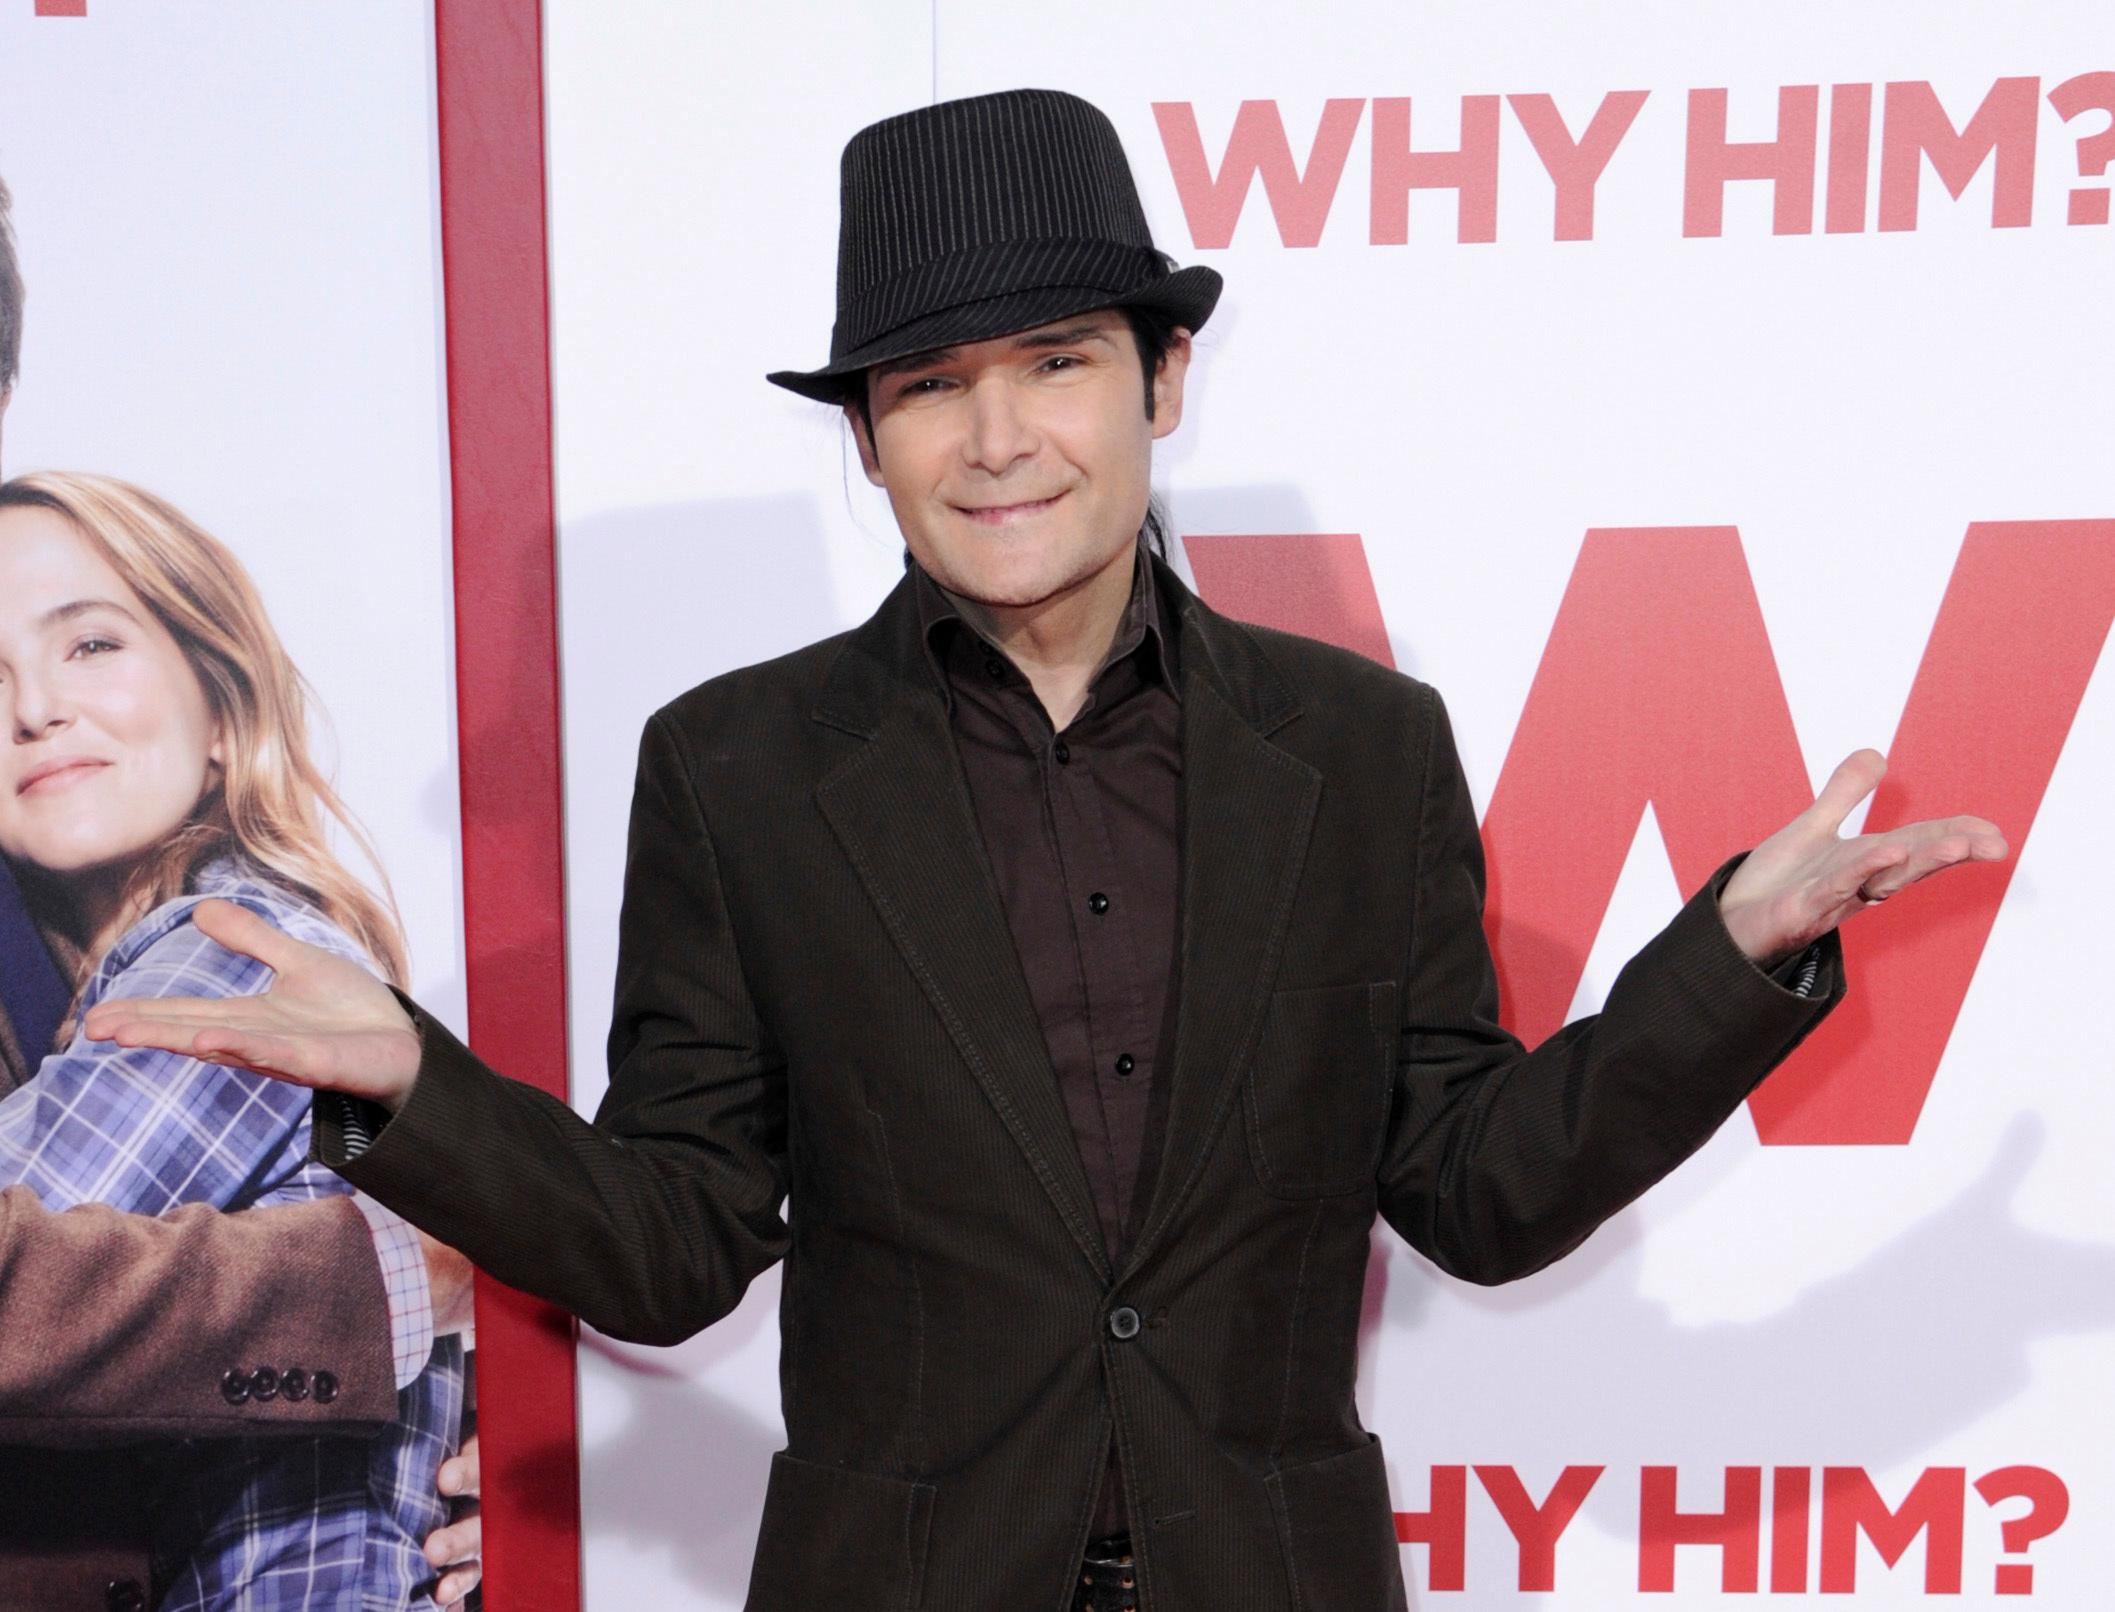 FILE - In this Dec. 17, 2016 file photo, Corey Feldman attends the world Premiere of &quot;Why Him?&quot; in Los Angeles. Feldman is identifying a man he said molested him when he was a young teen. (Photo by Richard Shotwell/Invision/AP, File)<p></p>